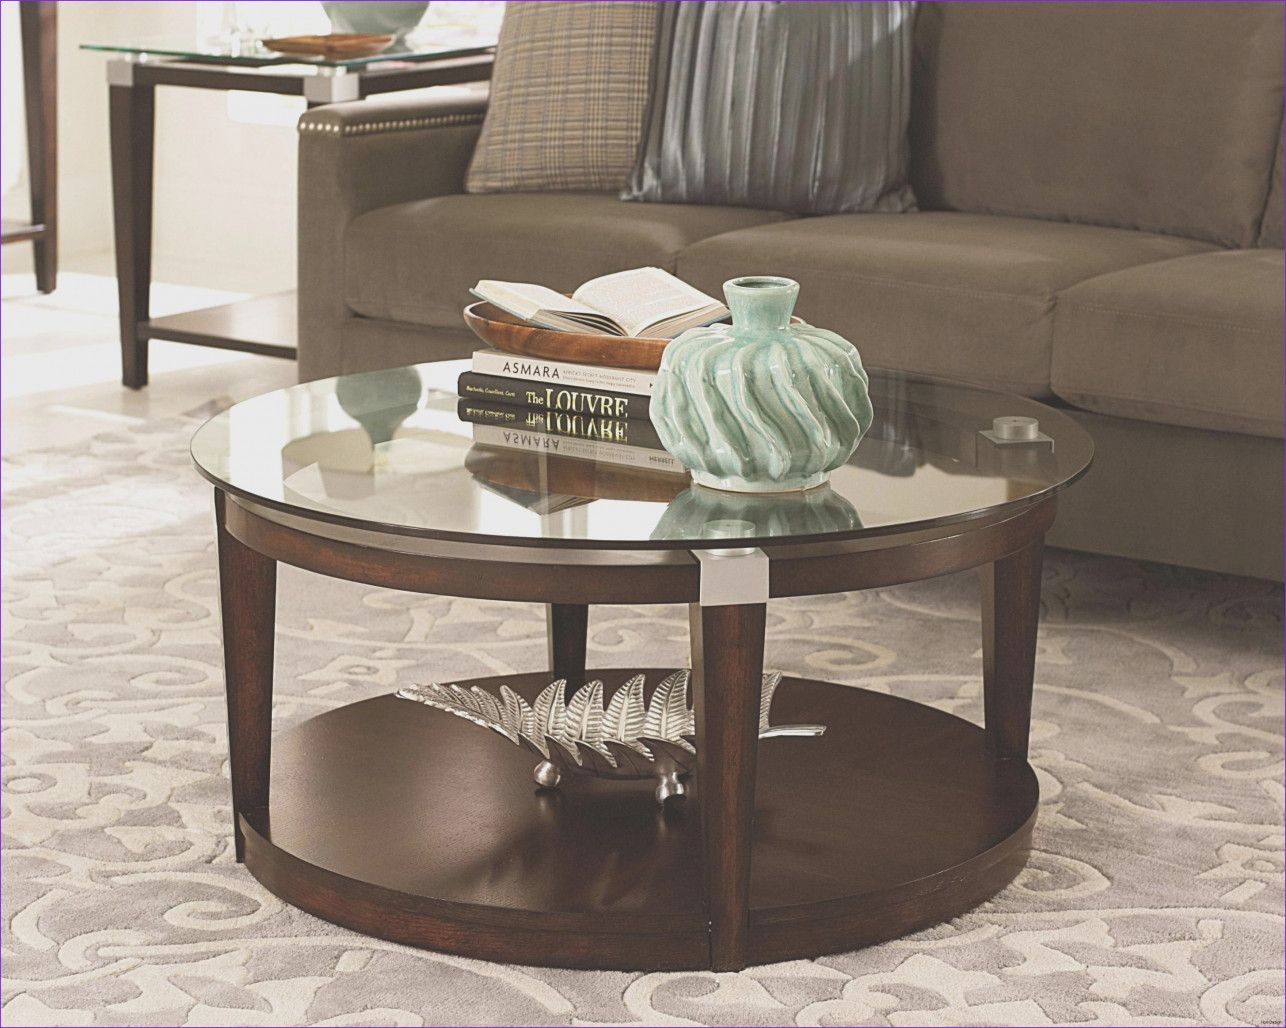 99 Luxury Tv Stand And Matching Coffee Table 2020 With Images